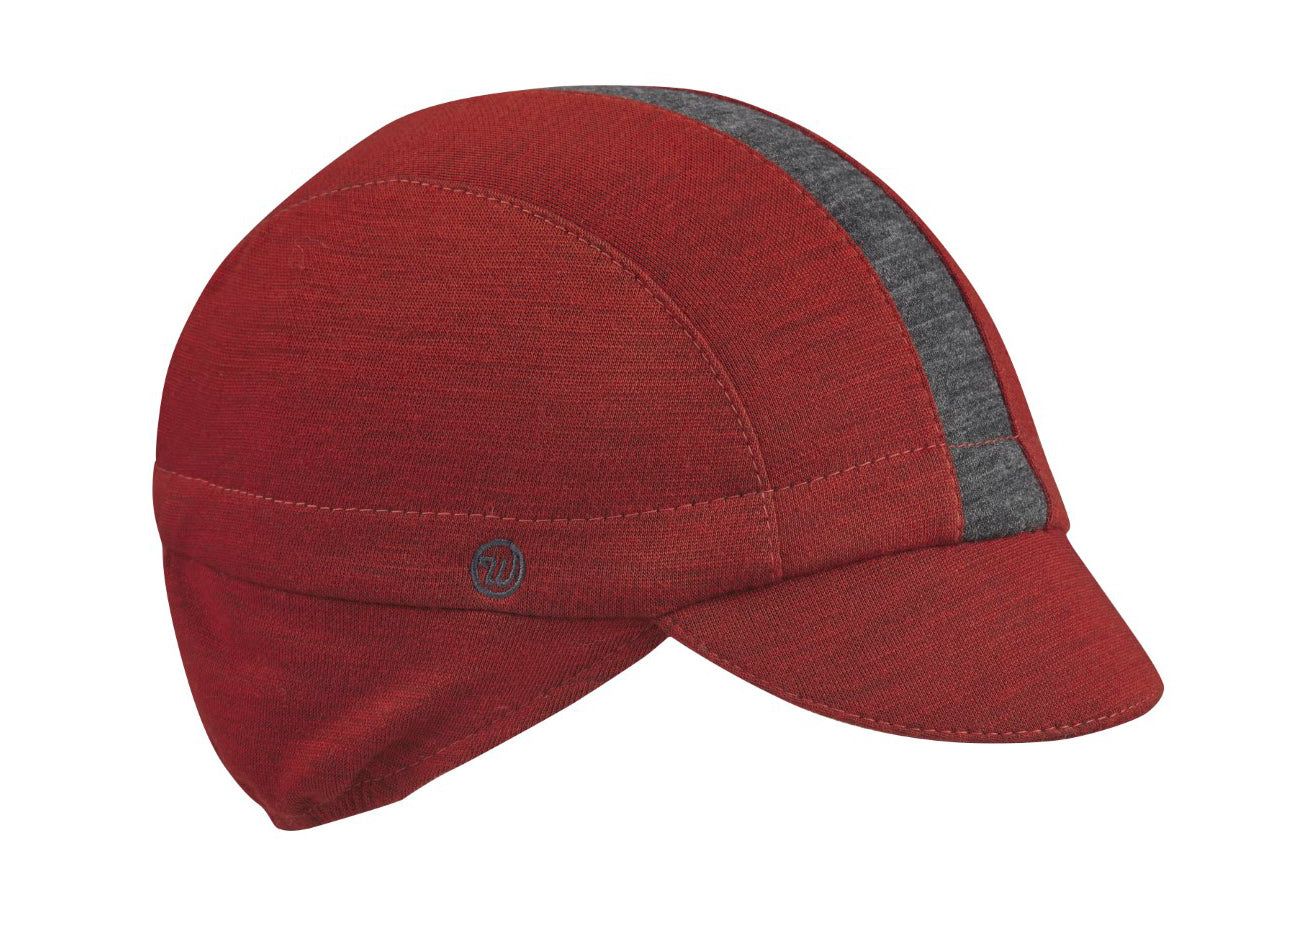 Red/Charcoal Stripe Merino Wool Ear Flap Cap